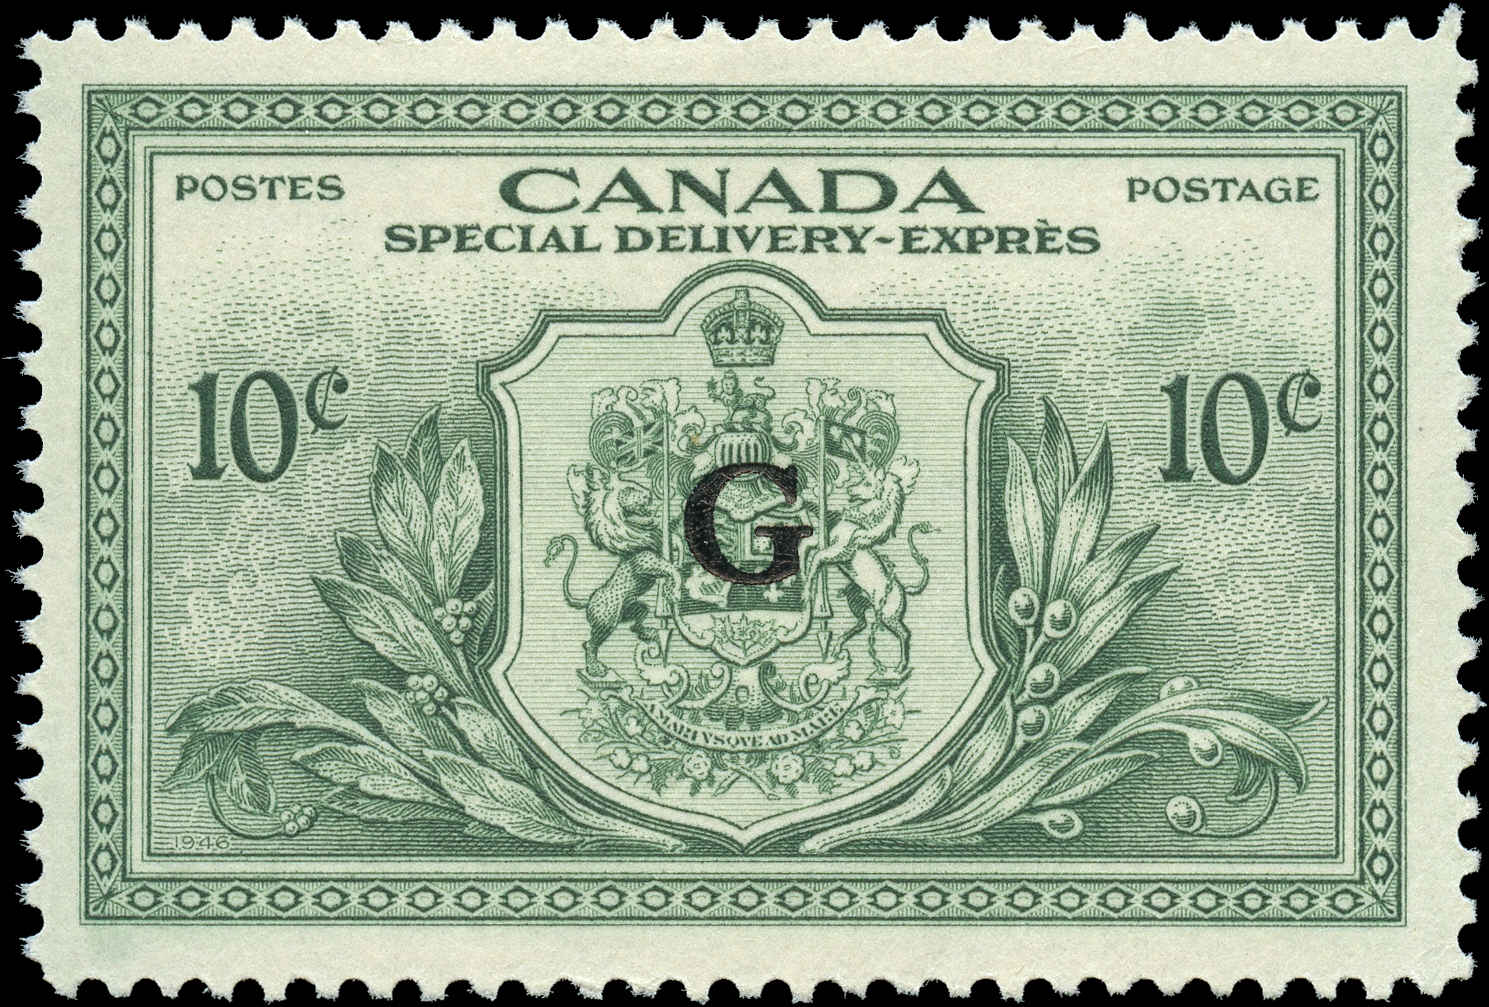 Canada #EO2, Overprint Stamp, VF, MH